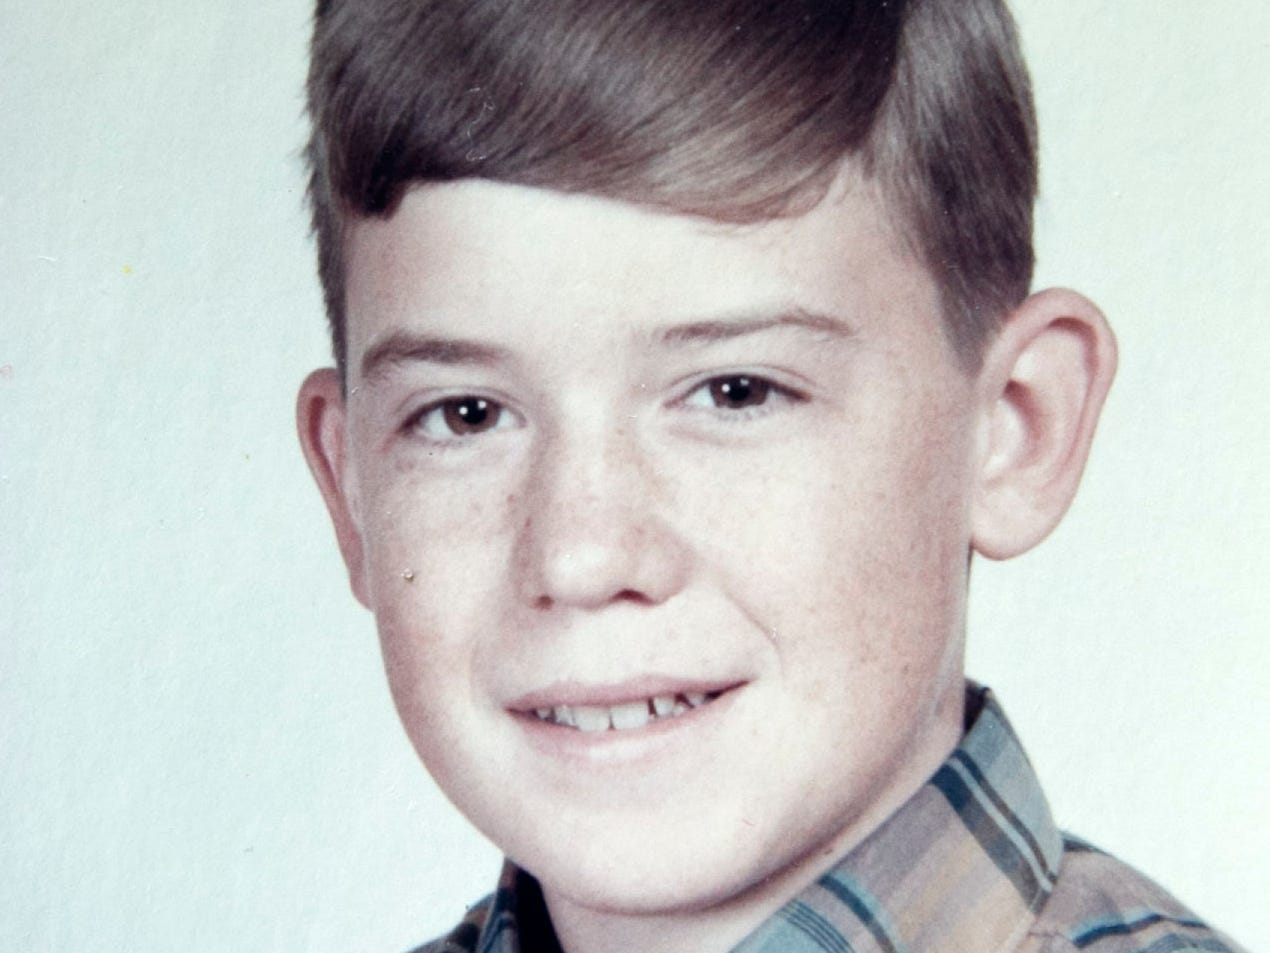 Michael Crow in fifth grade in Chicago.